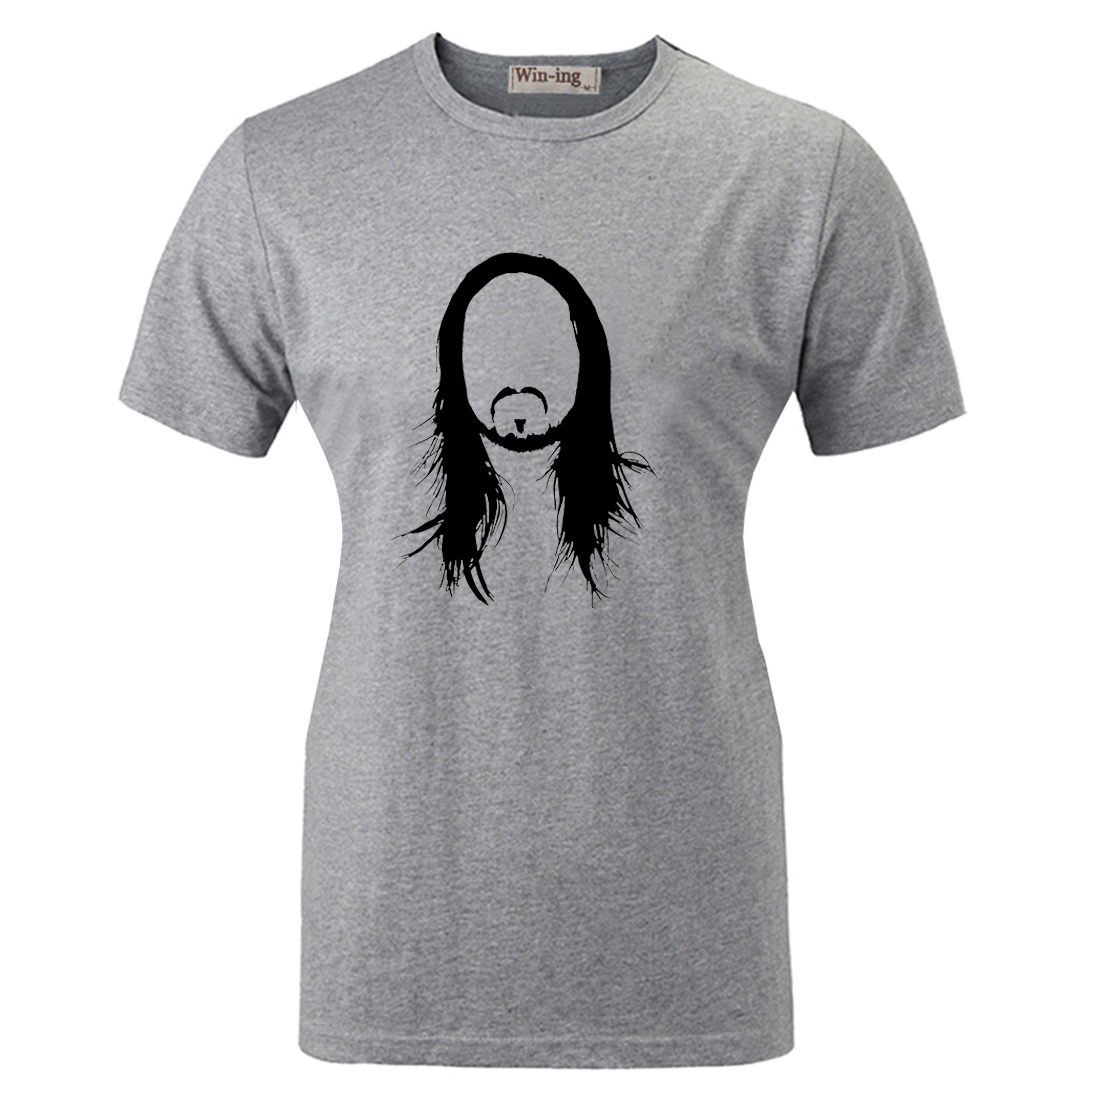 Summer Fashion Casual Cotton T shirt Punk Steve Aoki Silhouette Electro Inspired Graphic Women Girl Short Sleeves T-shirt Tops